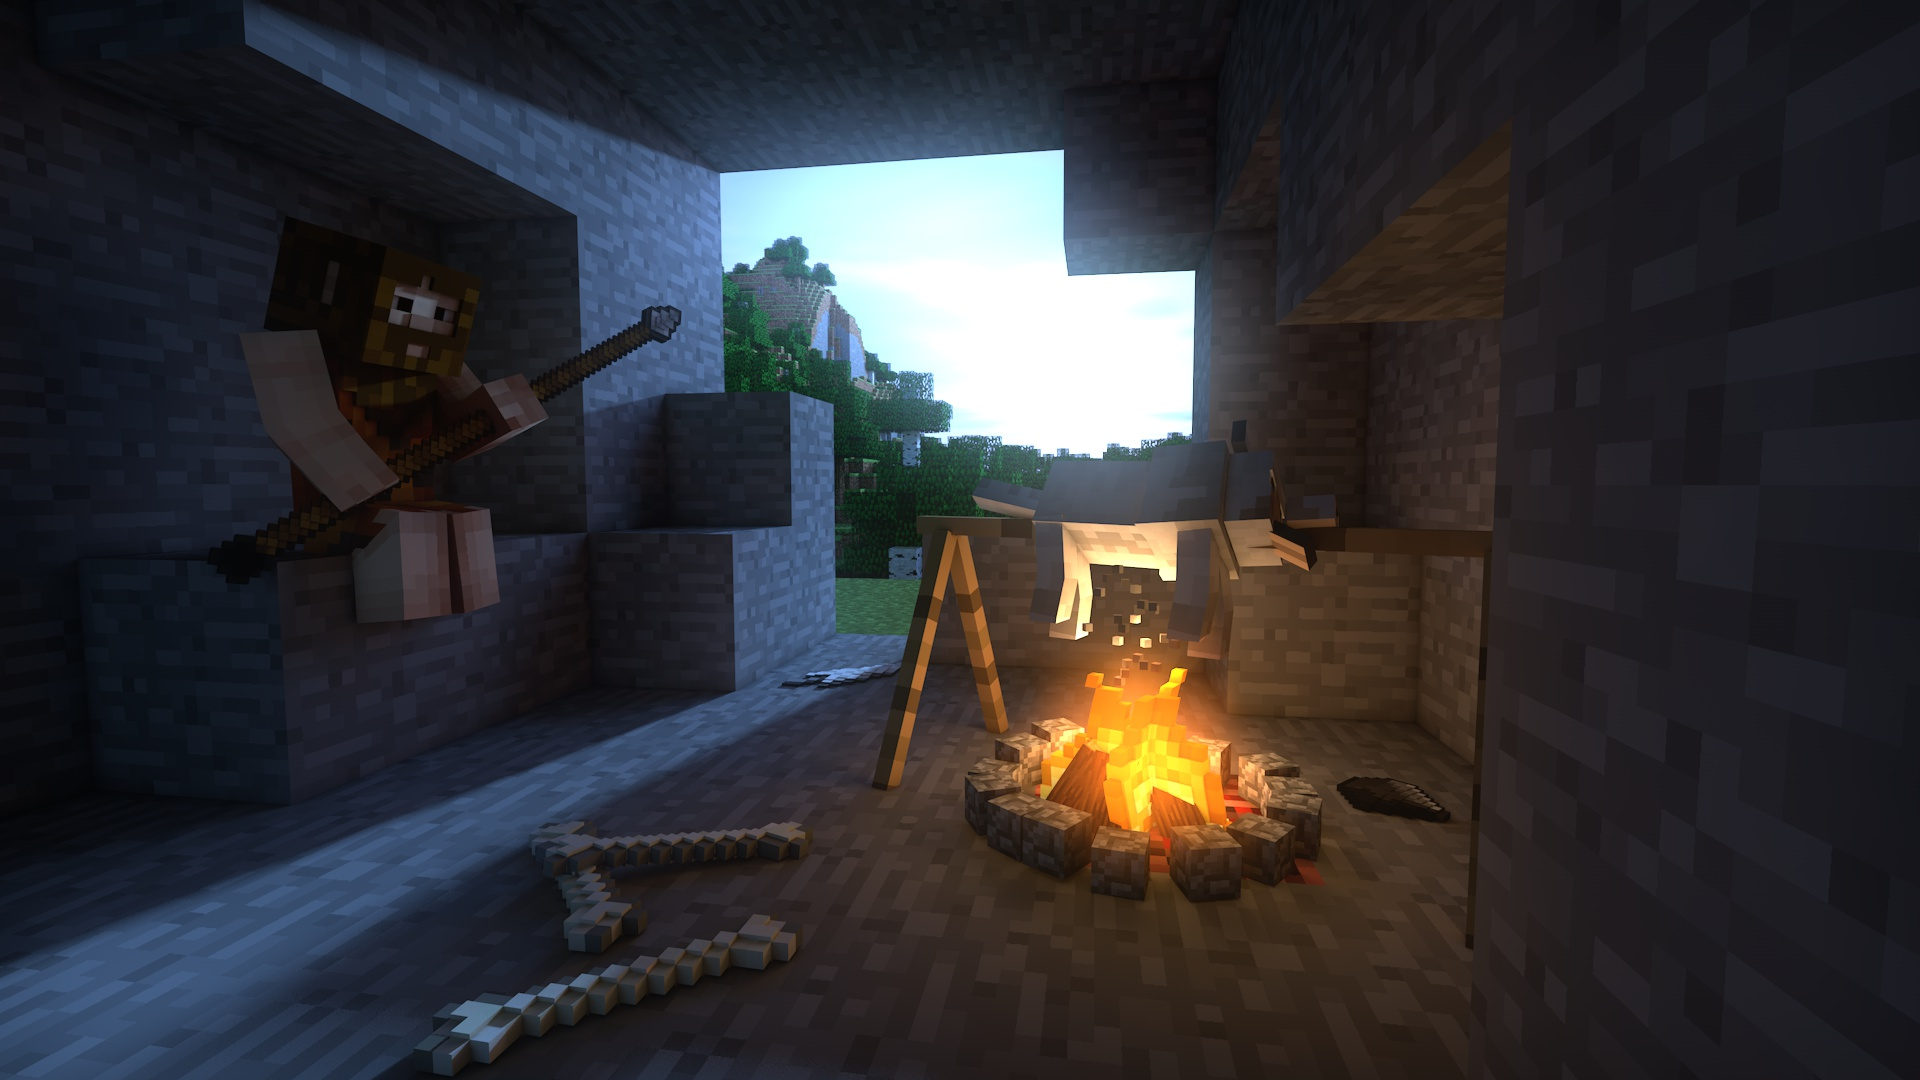 Amazing Wallpaper Minecraft Art - wallpaper_minecraft_3d___the_prehistory_by_thefennixcreations-d7tixak  You Should Have_227367.jpg